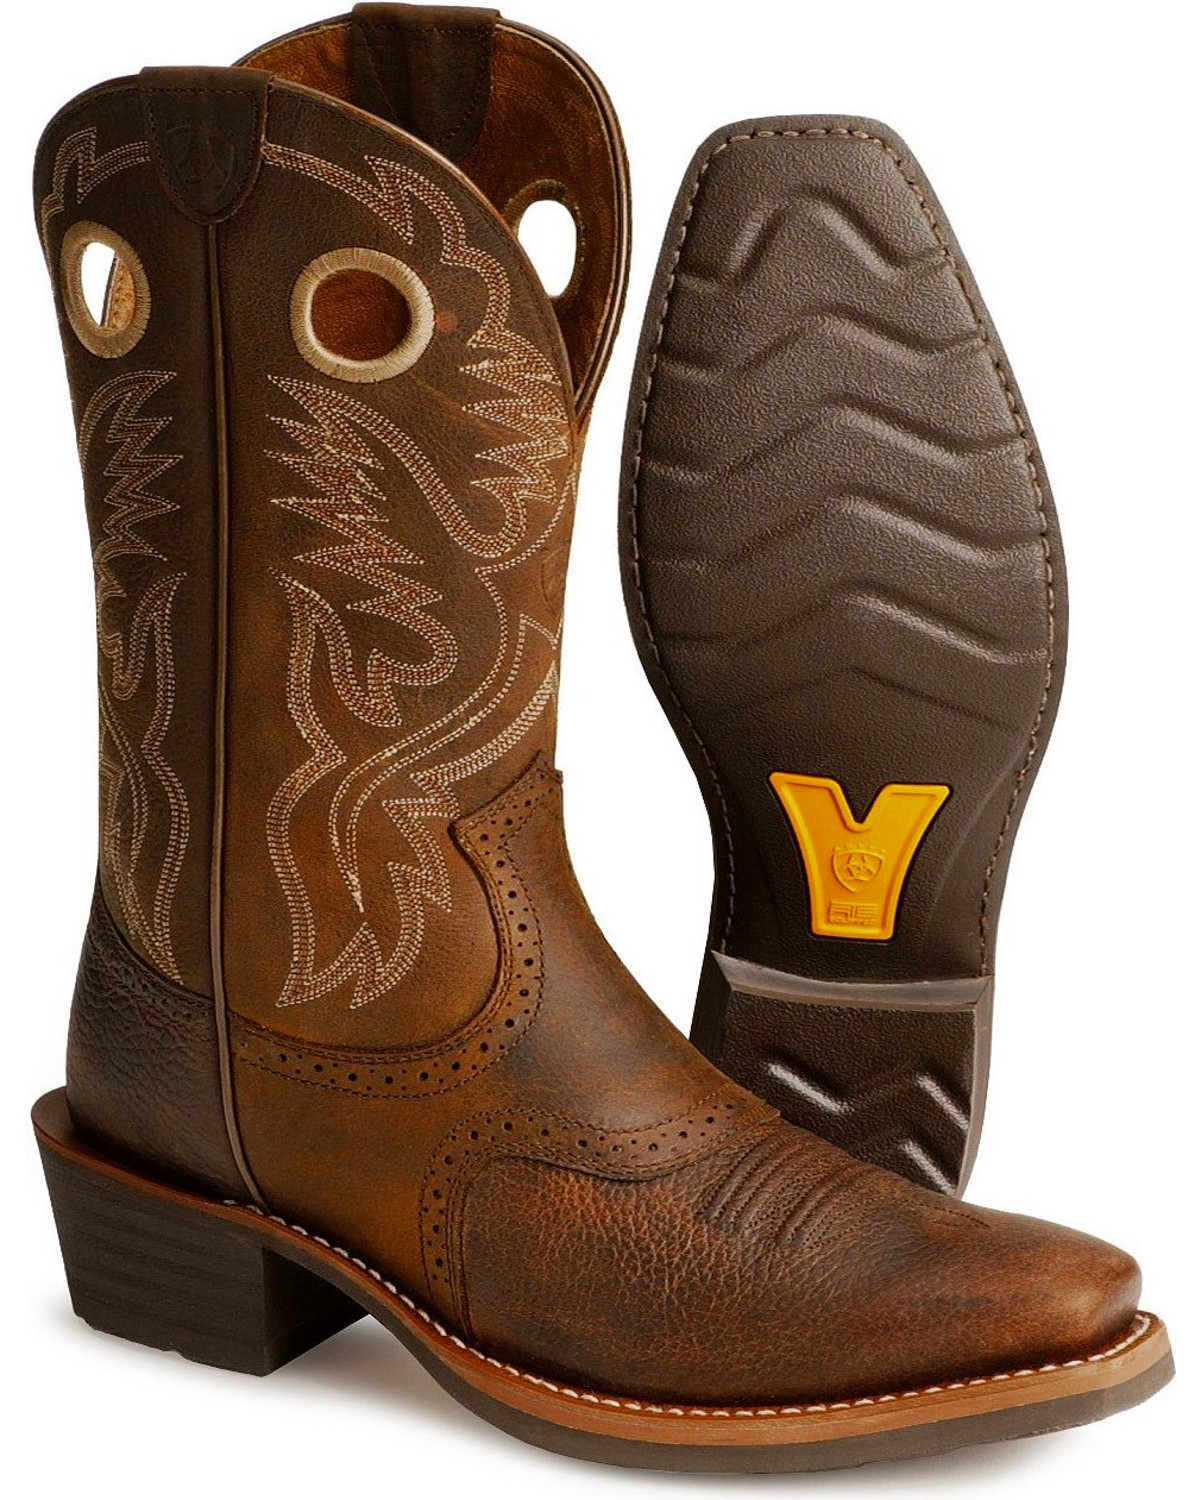 Ariat Heritage Rough Stock Cowboy Boots Square Toe